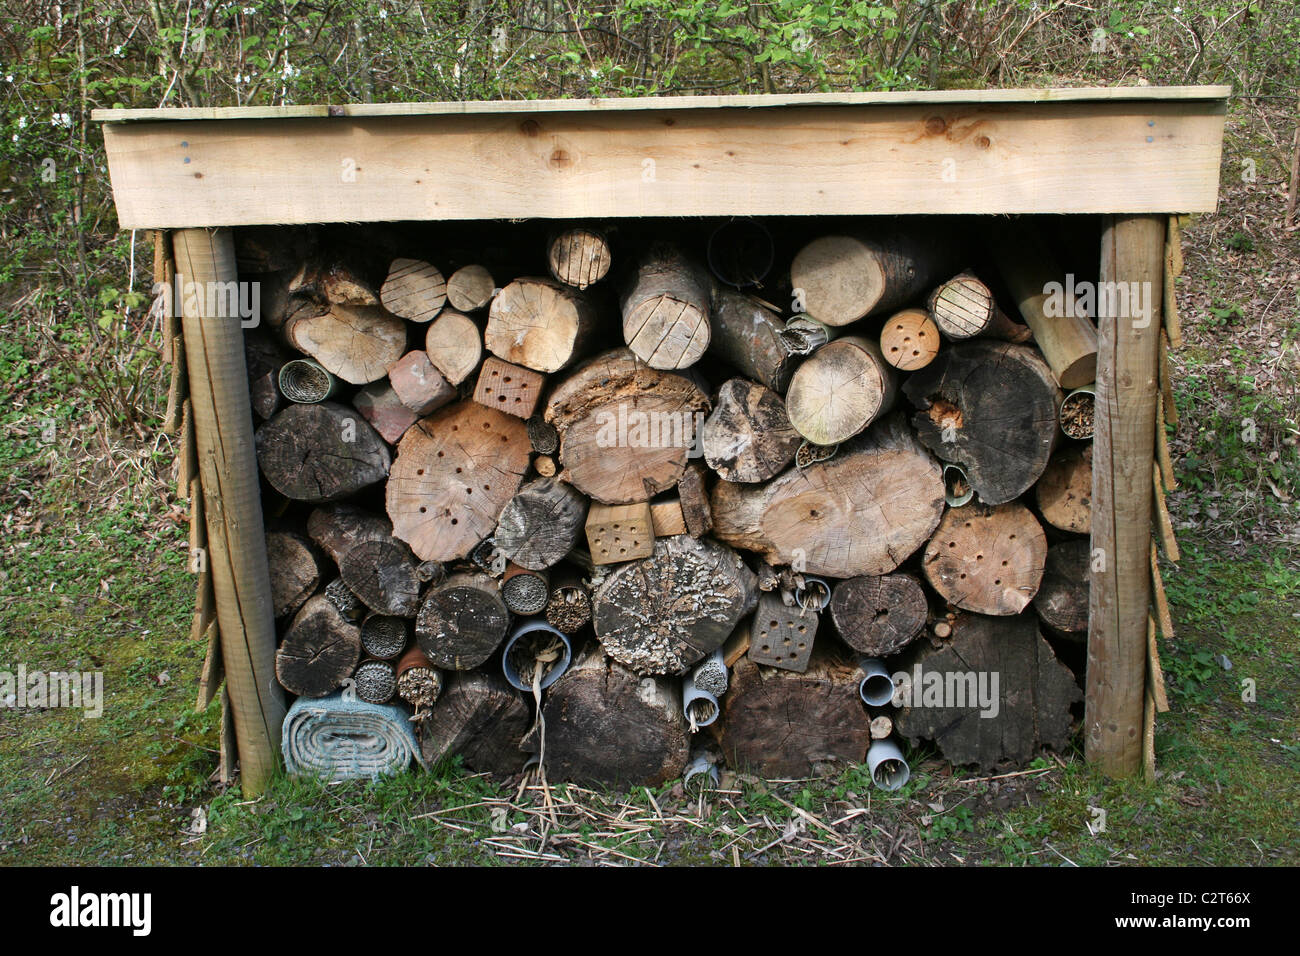 Insect Friendly Housing In A Log Pile At Conwy RSPB Reserve, Wales, UK - Stock Image